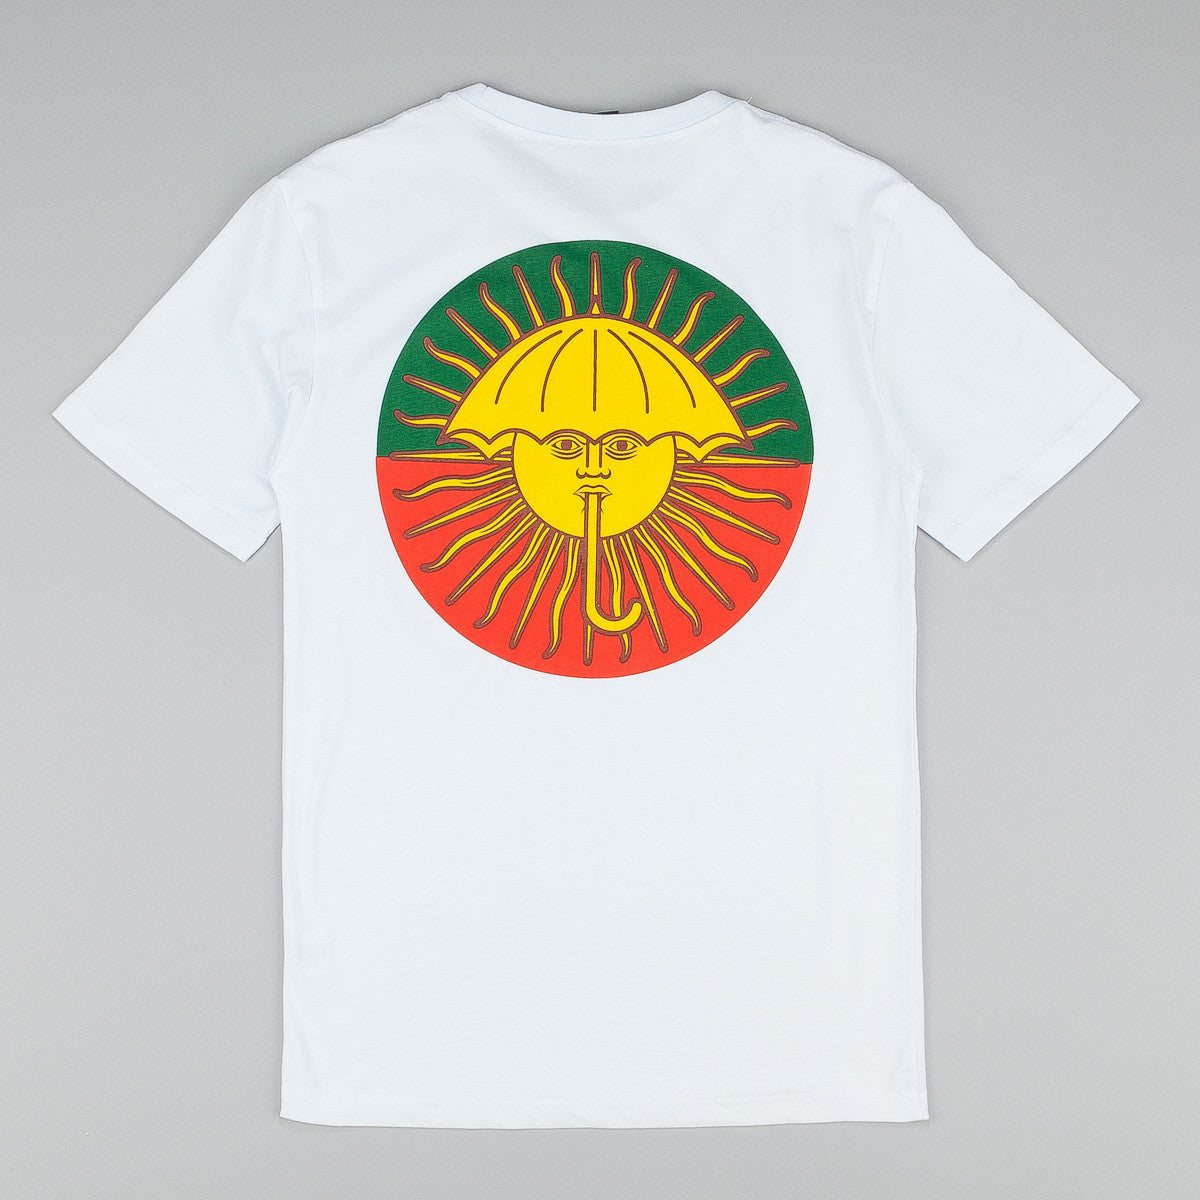 Helas Parasol De Mayo T-Shirt White / Red - Green